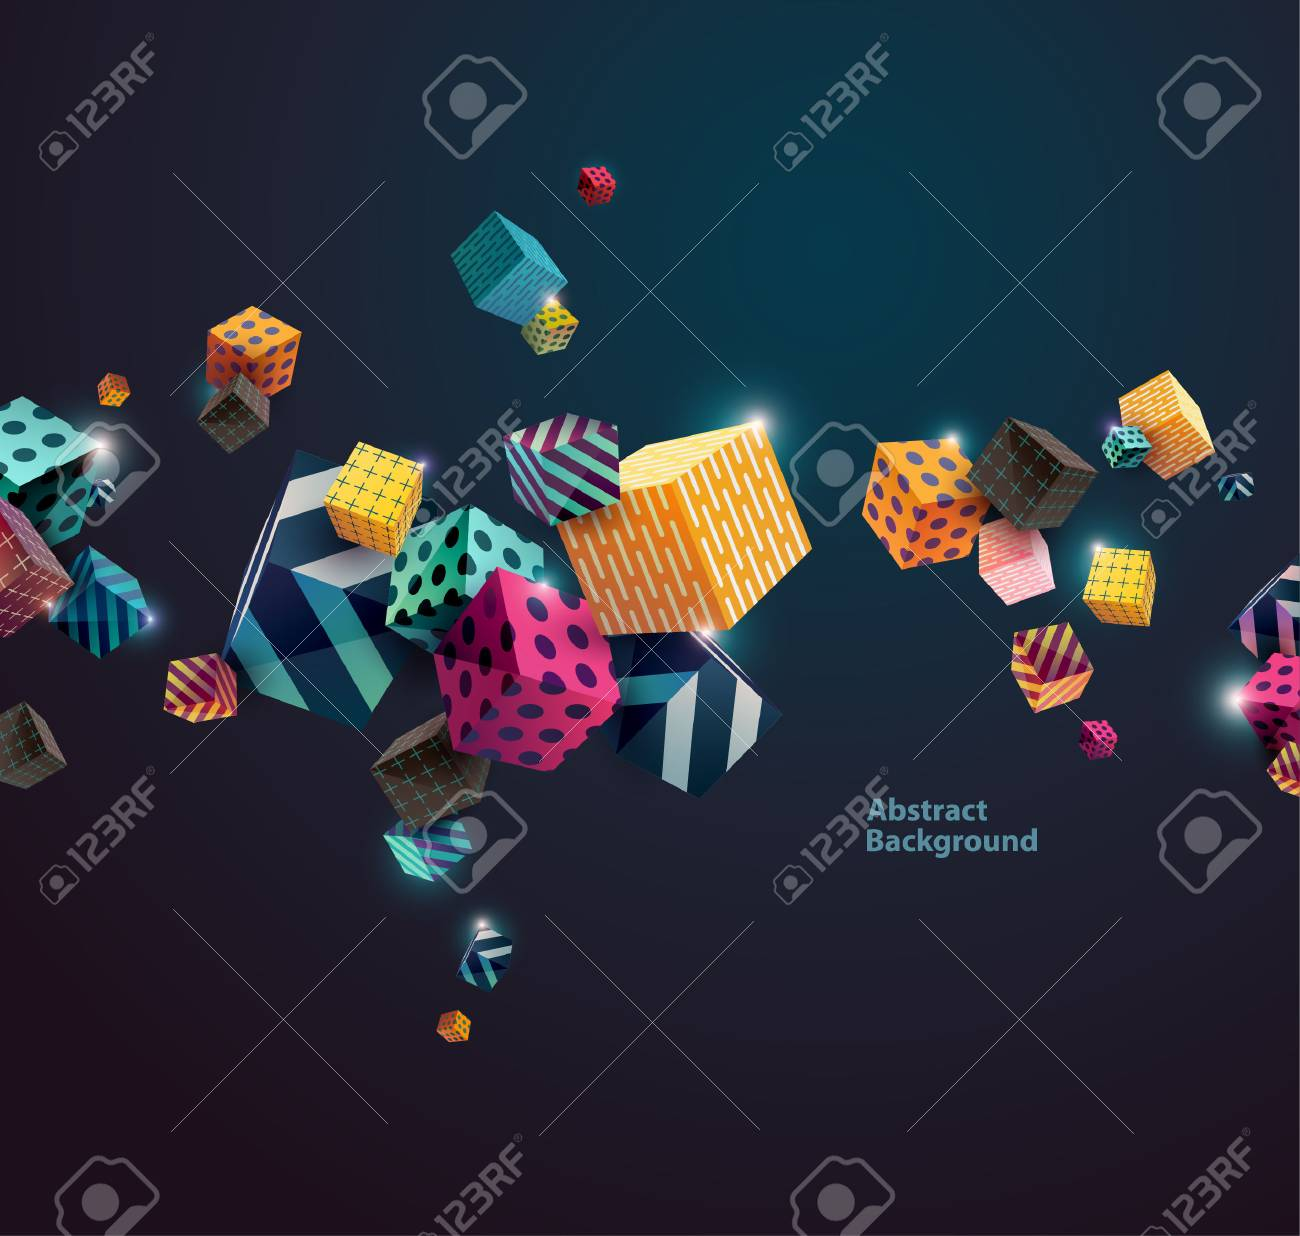 Multicolored decorative cubes. Abstract vector illustration. - 54352800